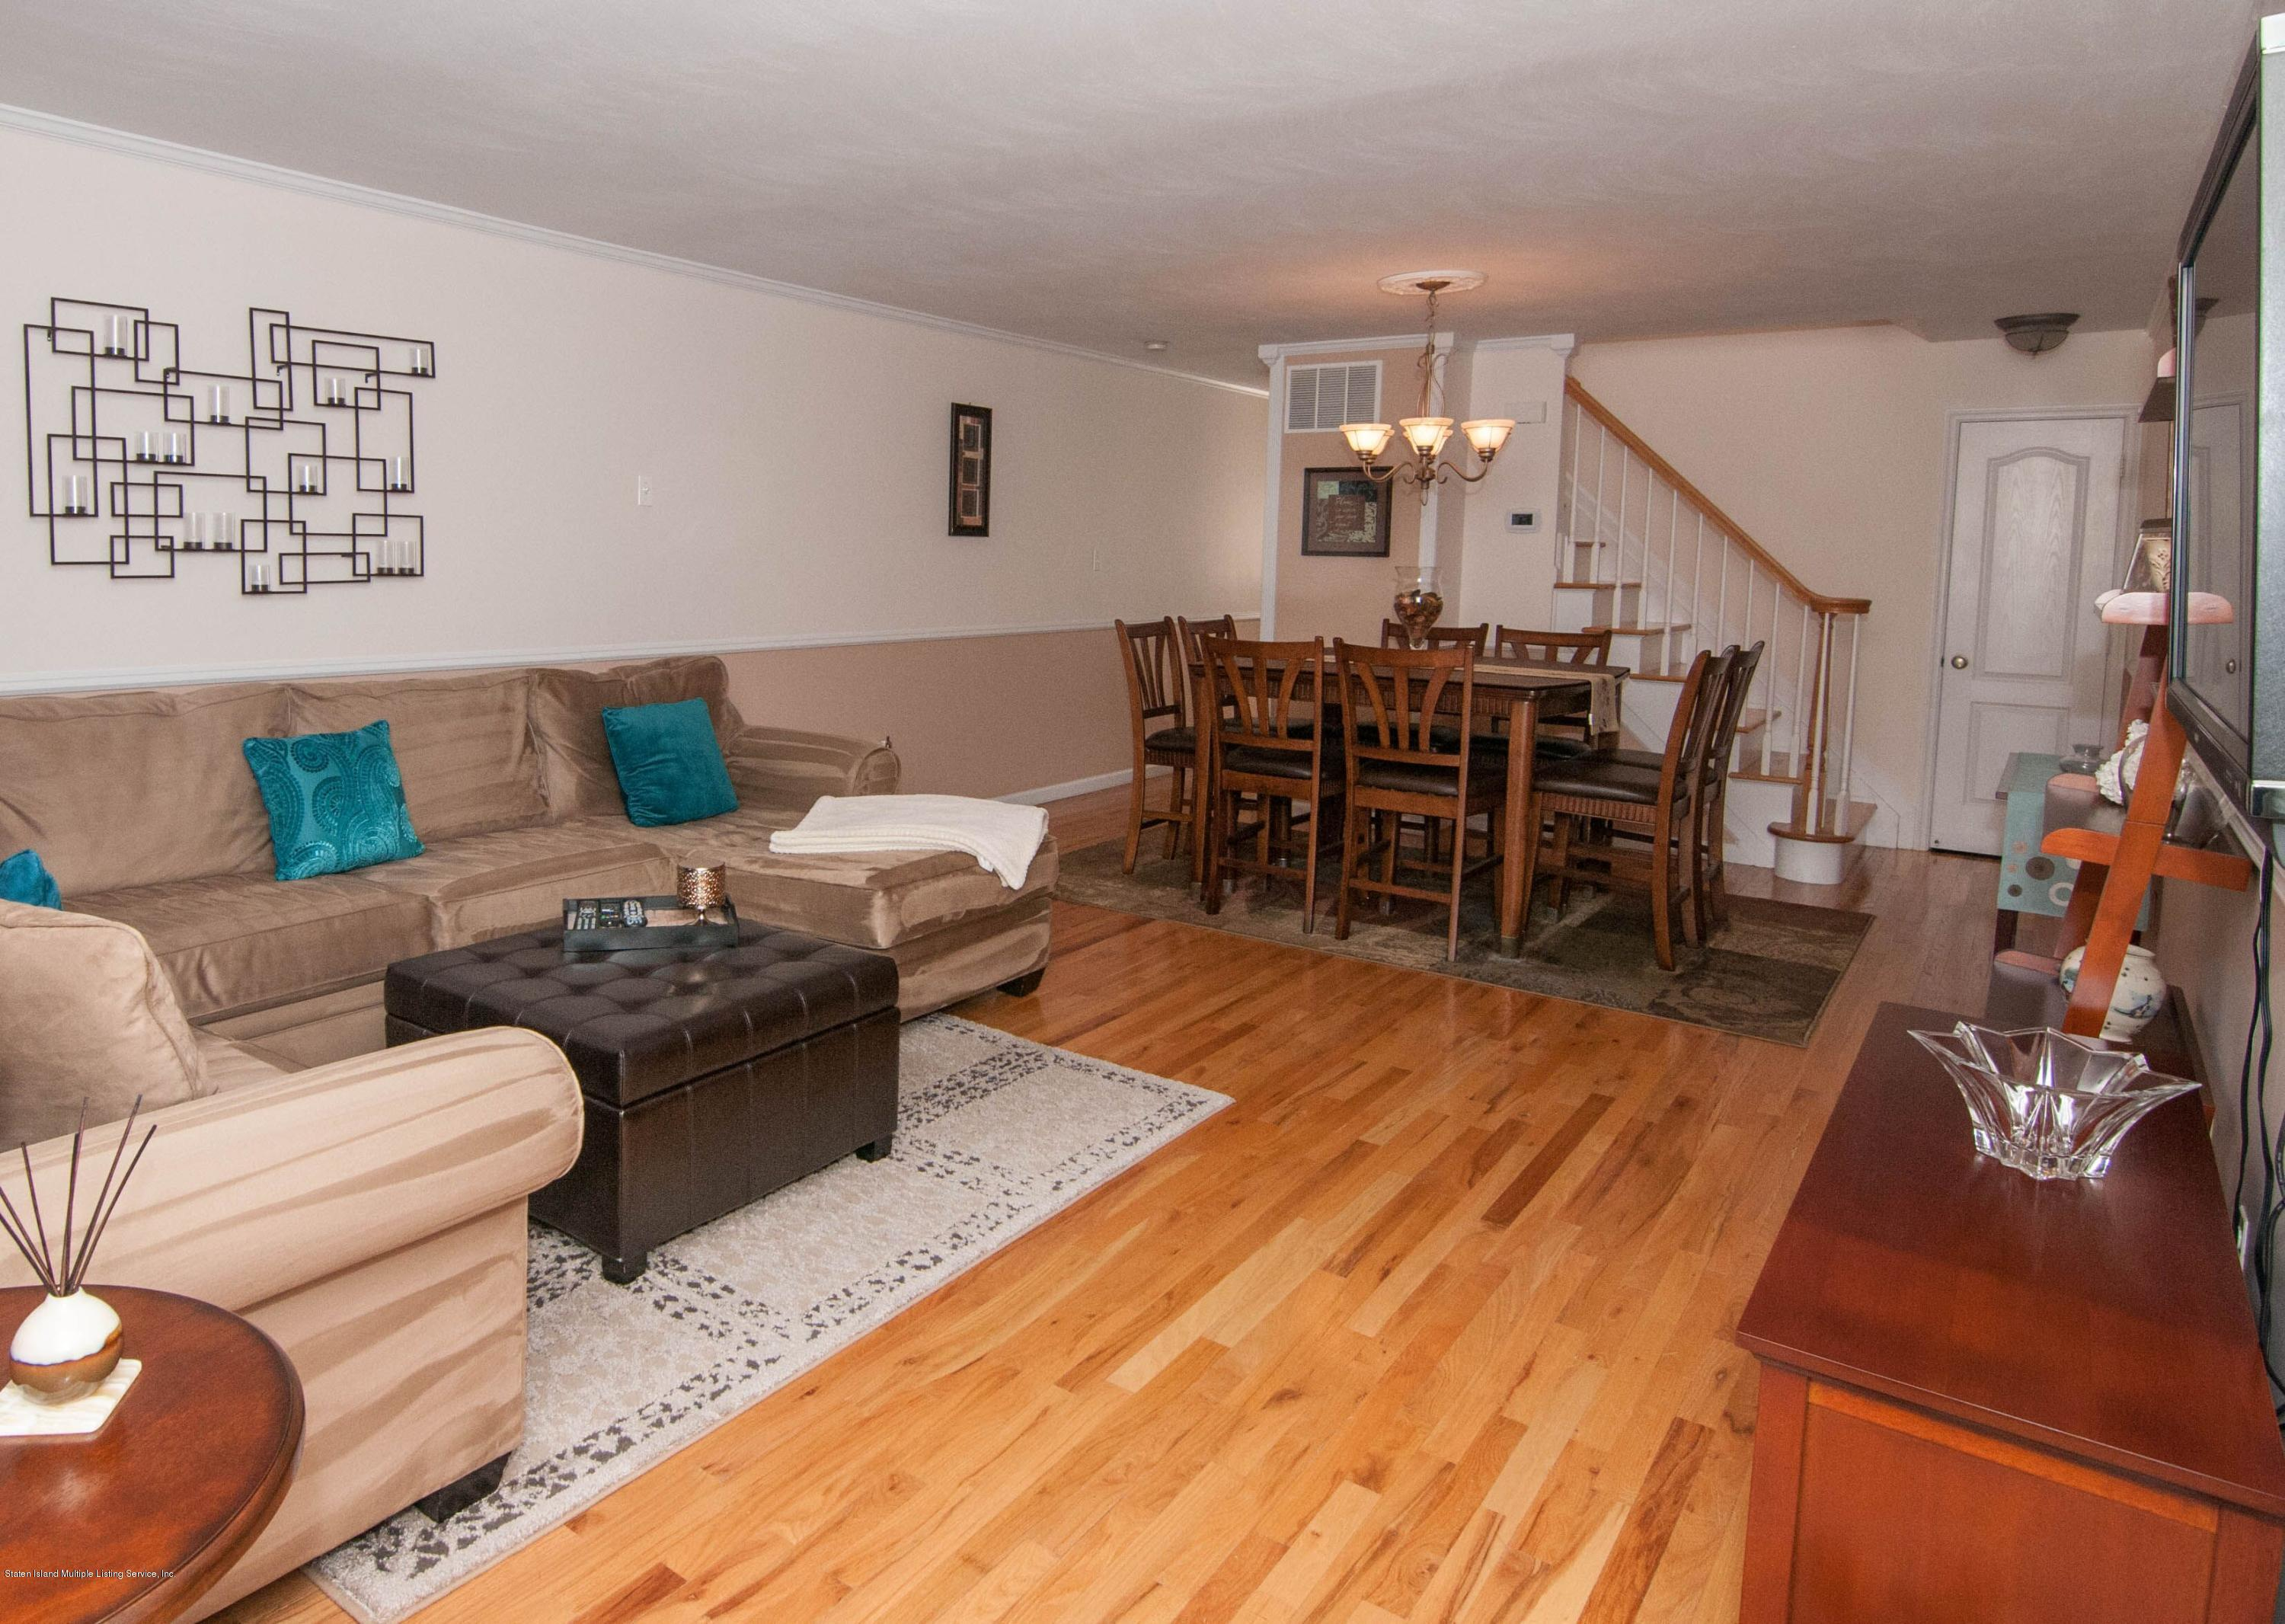 Single Family - Attached 56 Endview Street  Staten Island, NY 10312, MLS-1131439-7